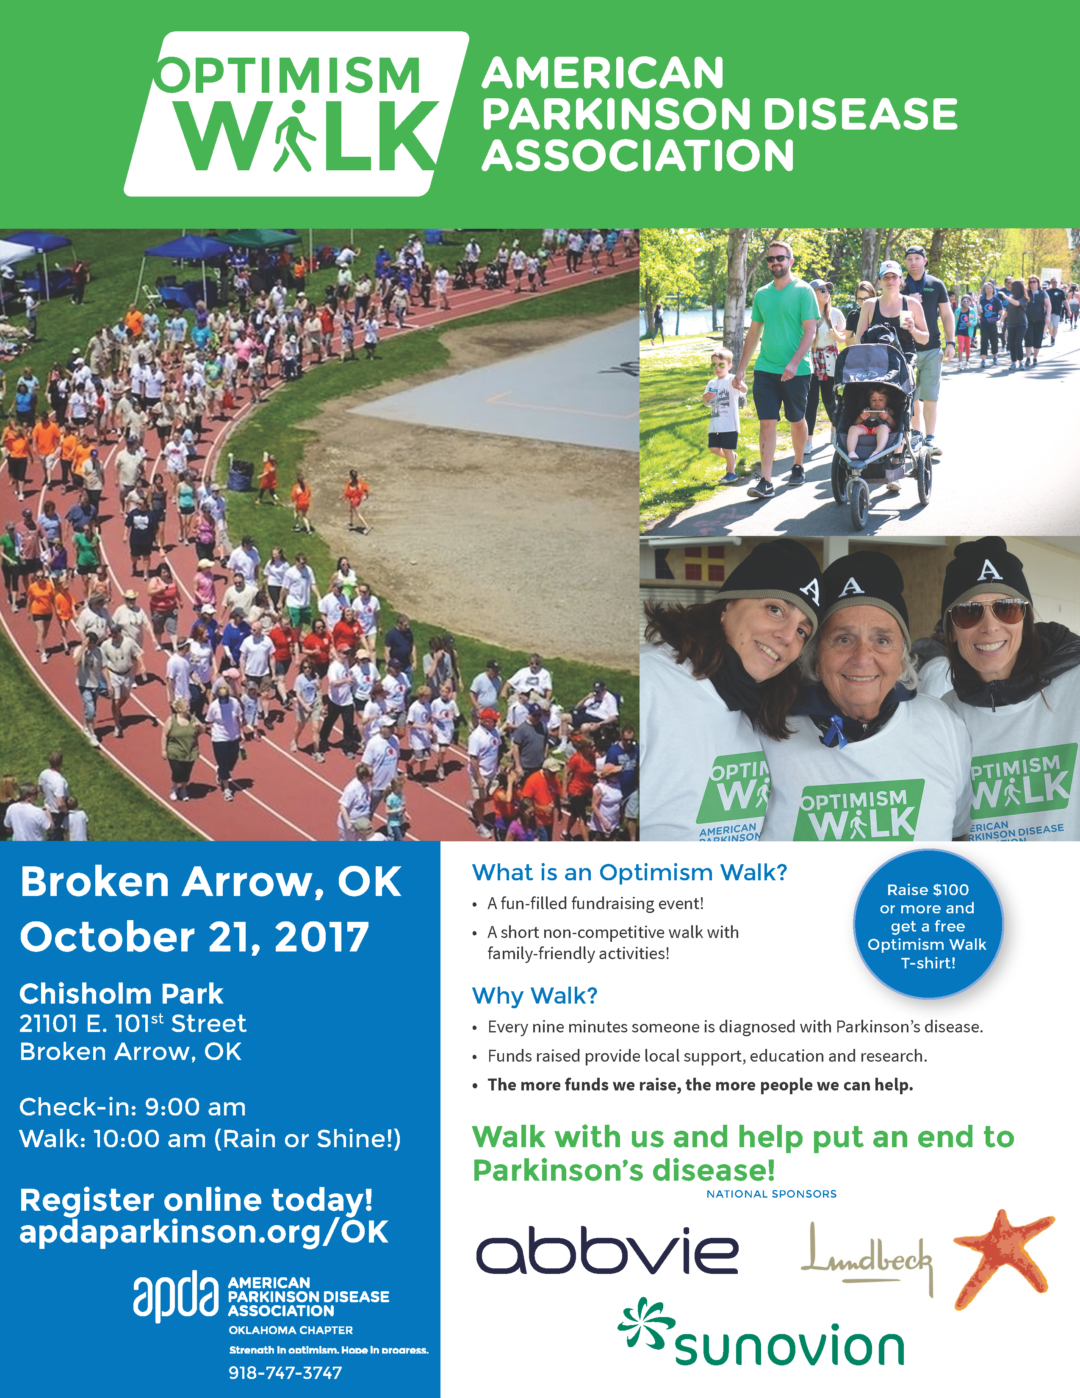 OK_Flyer_2017-1080x1398.png